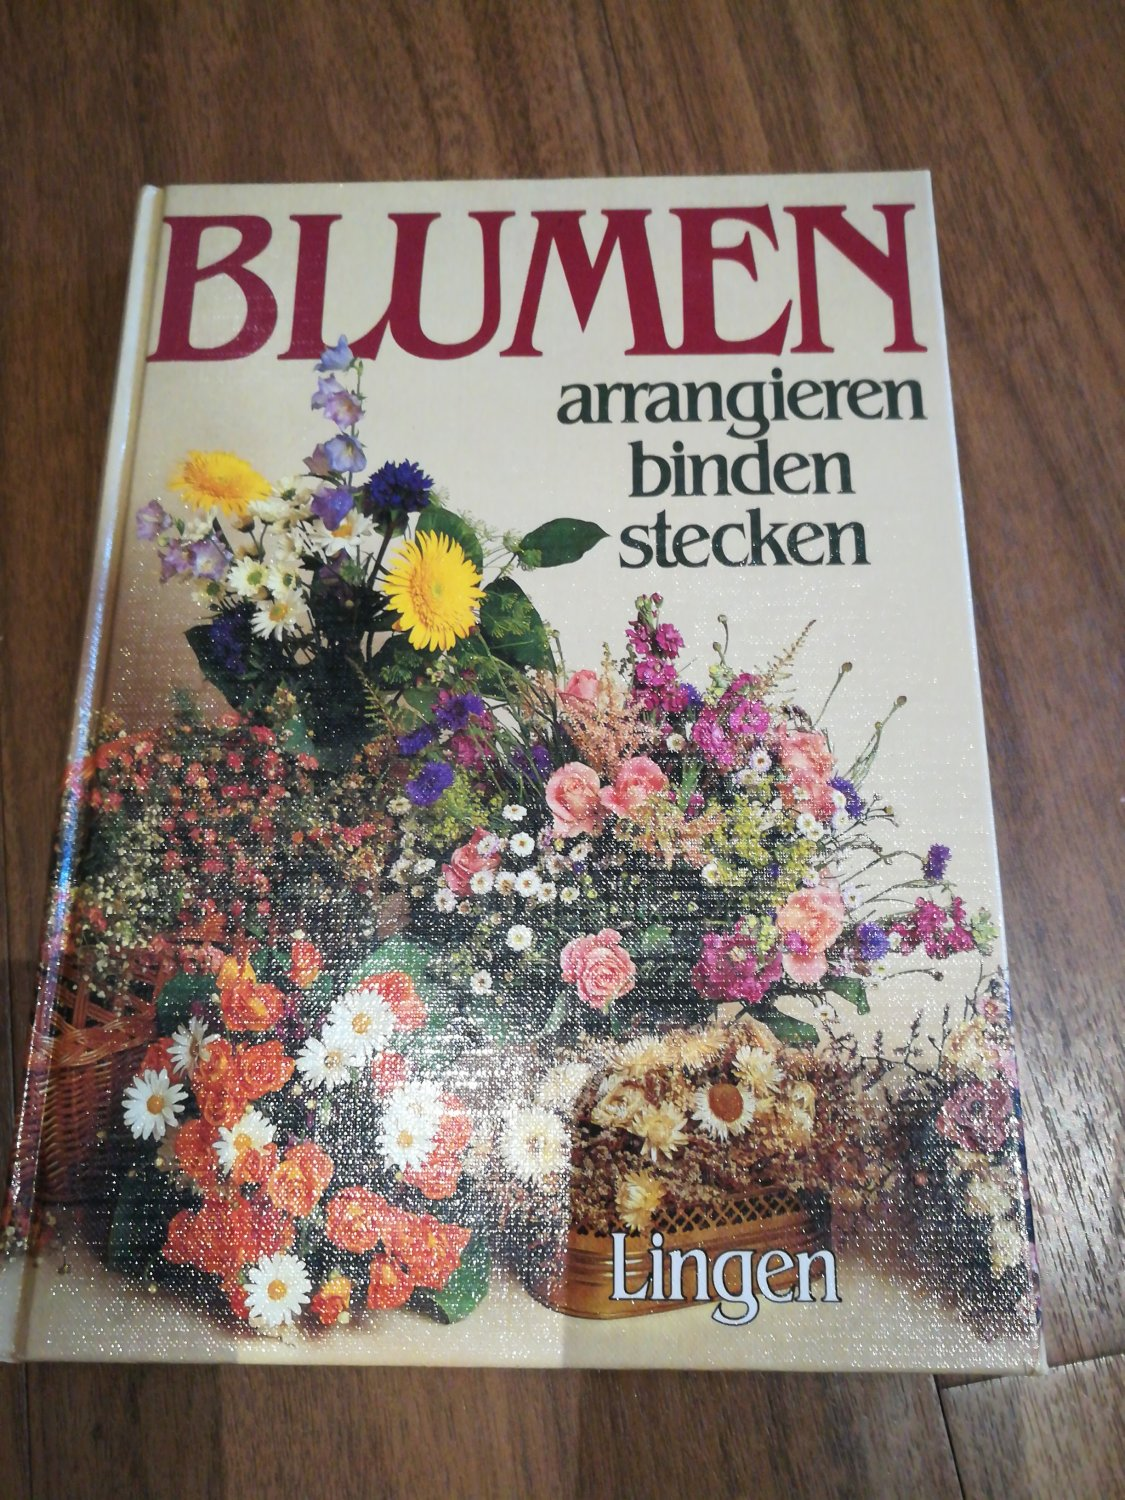 blumen arrangieren binden stecken buch gebraucht. Black Bedroom Furniture Sets. Home Design Ideas